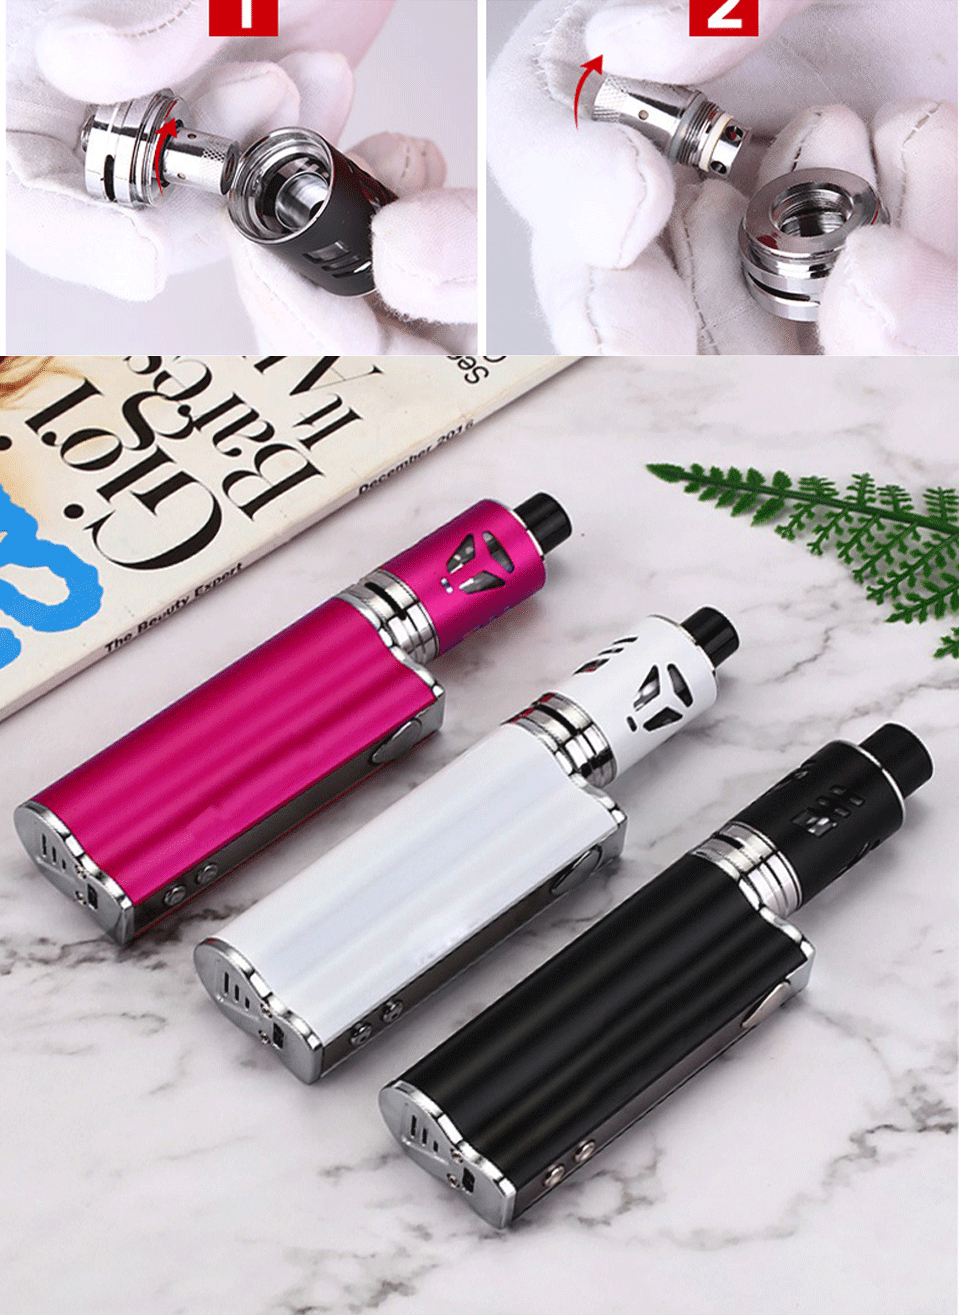 , Mini 80w Electronic Cigarette Kits 2200mah Built in Battery Box mod Starter Kit 510 Metal Body 0.5ohm E- Cigarette  vape vaper